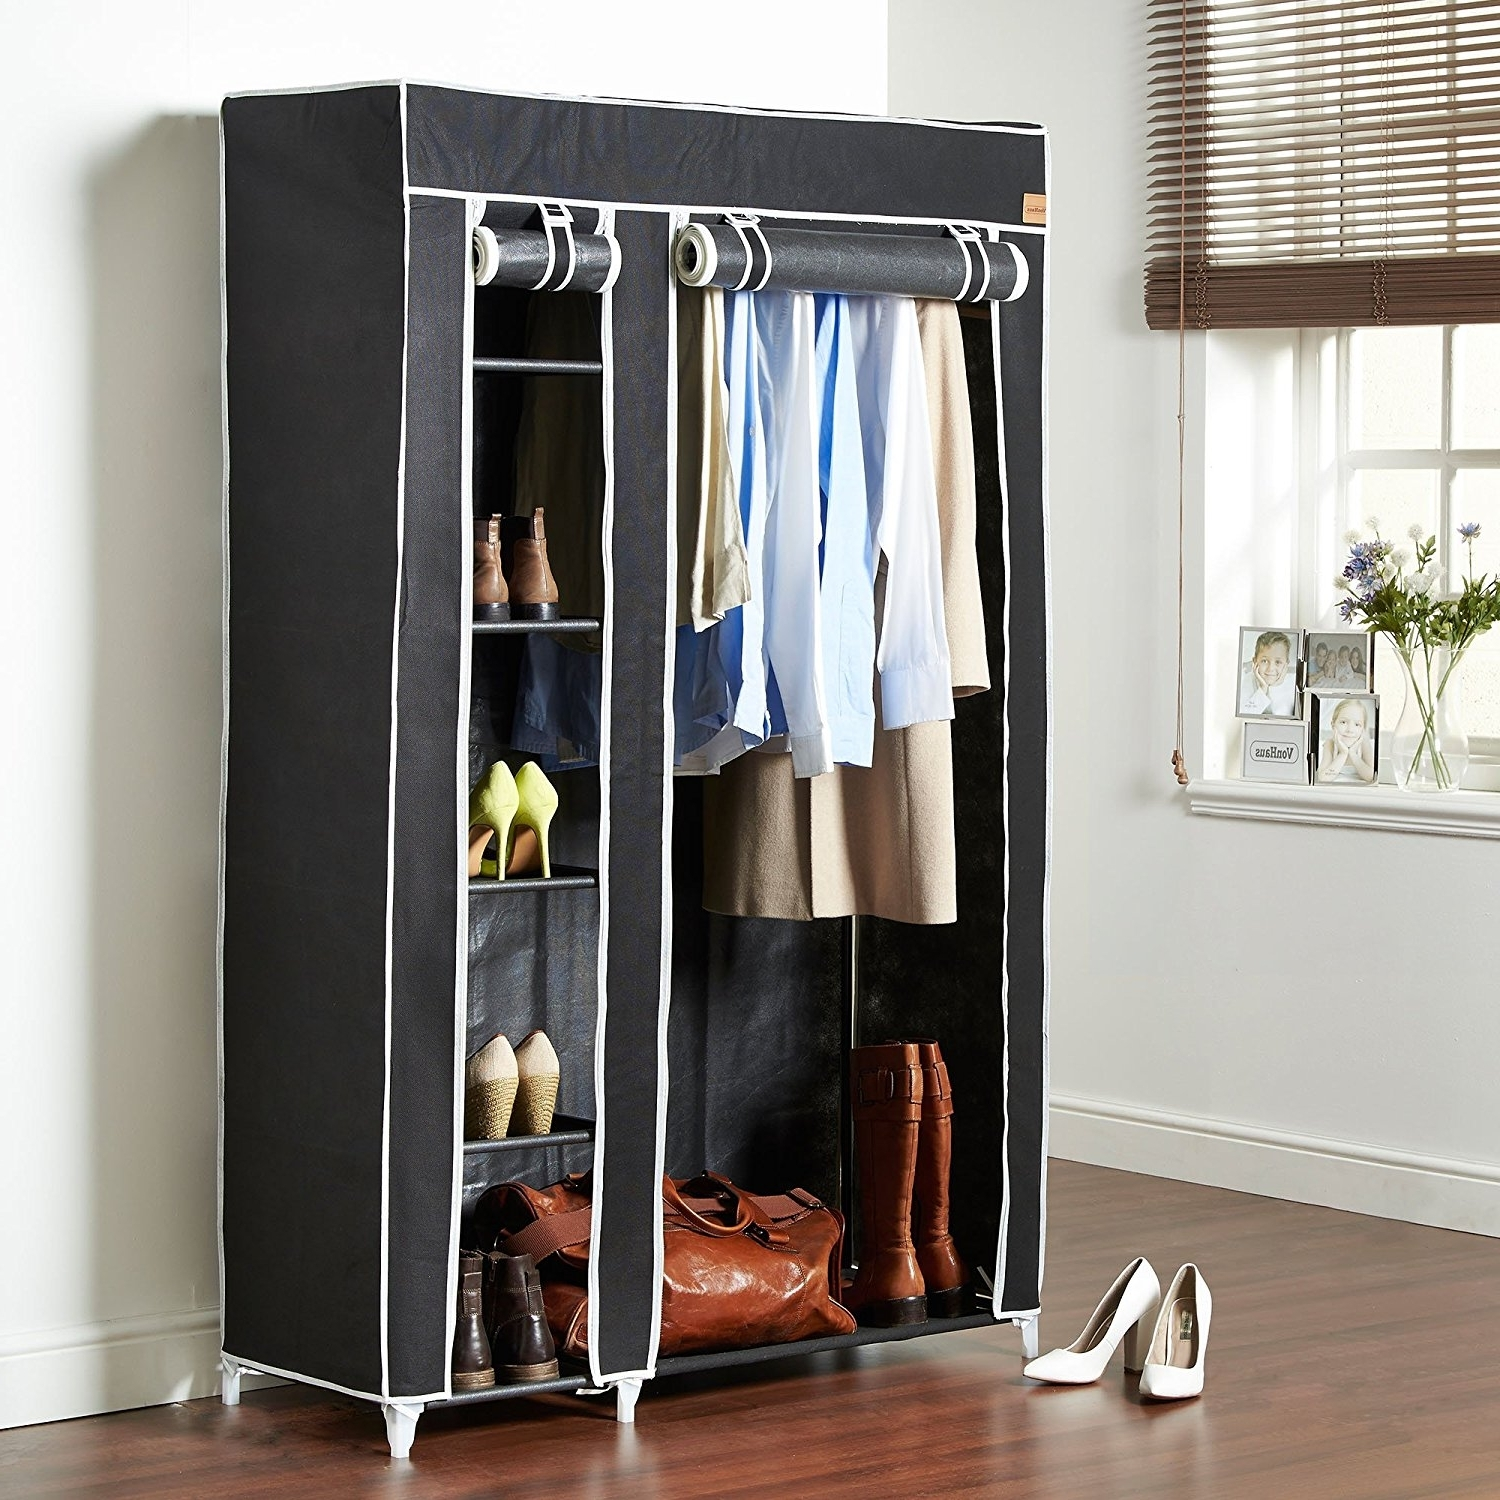 Double Black Covered Tidy Rail Wardrobes Throughout Popular Vonhaus Double Canvas Effect Wardrobe – Clothes Storage Cupboard (View 5 of 15)